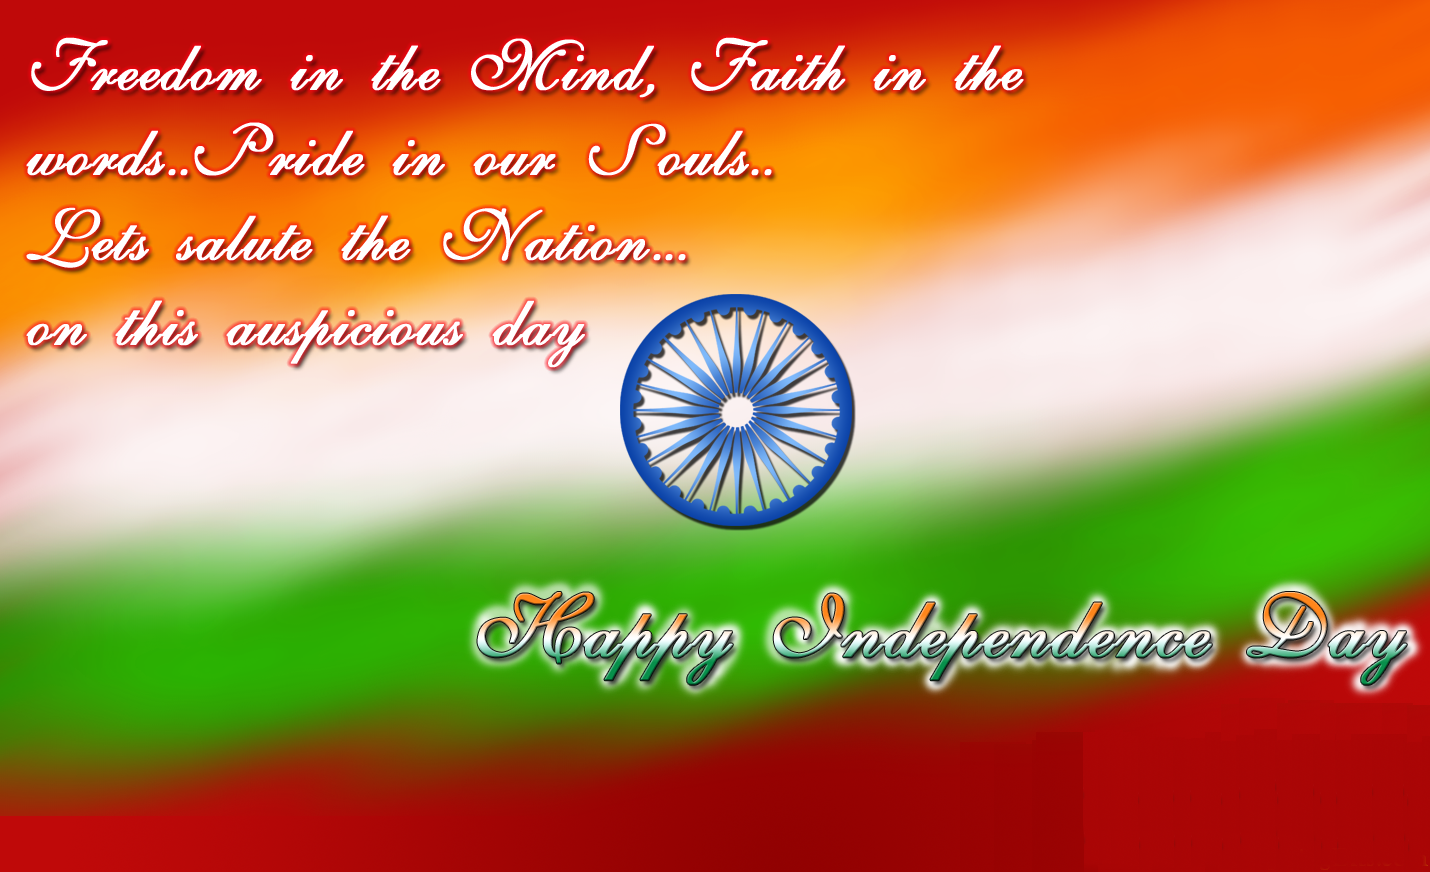 independence day images for whatsapp dp, fb, twitter, snapchat